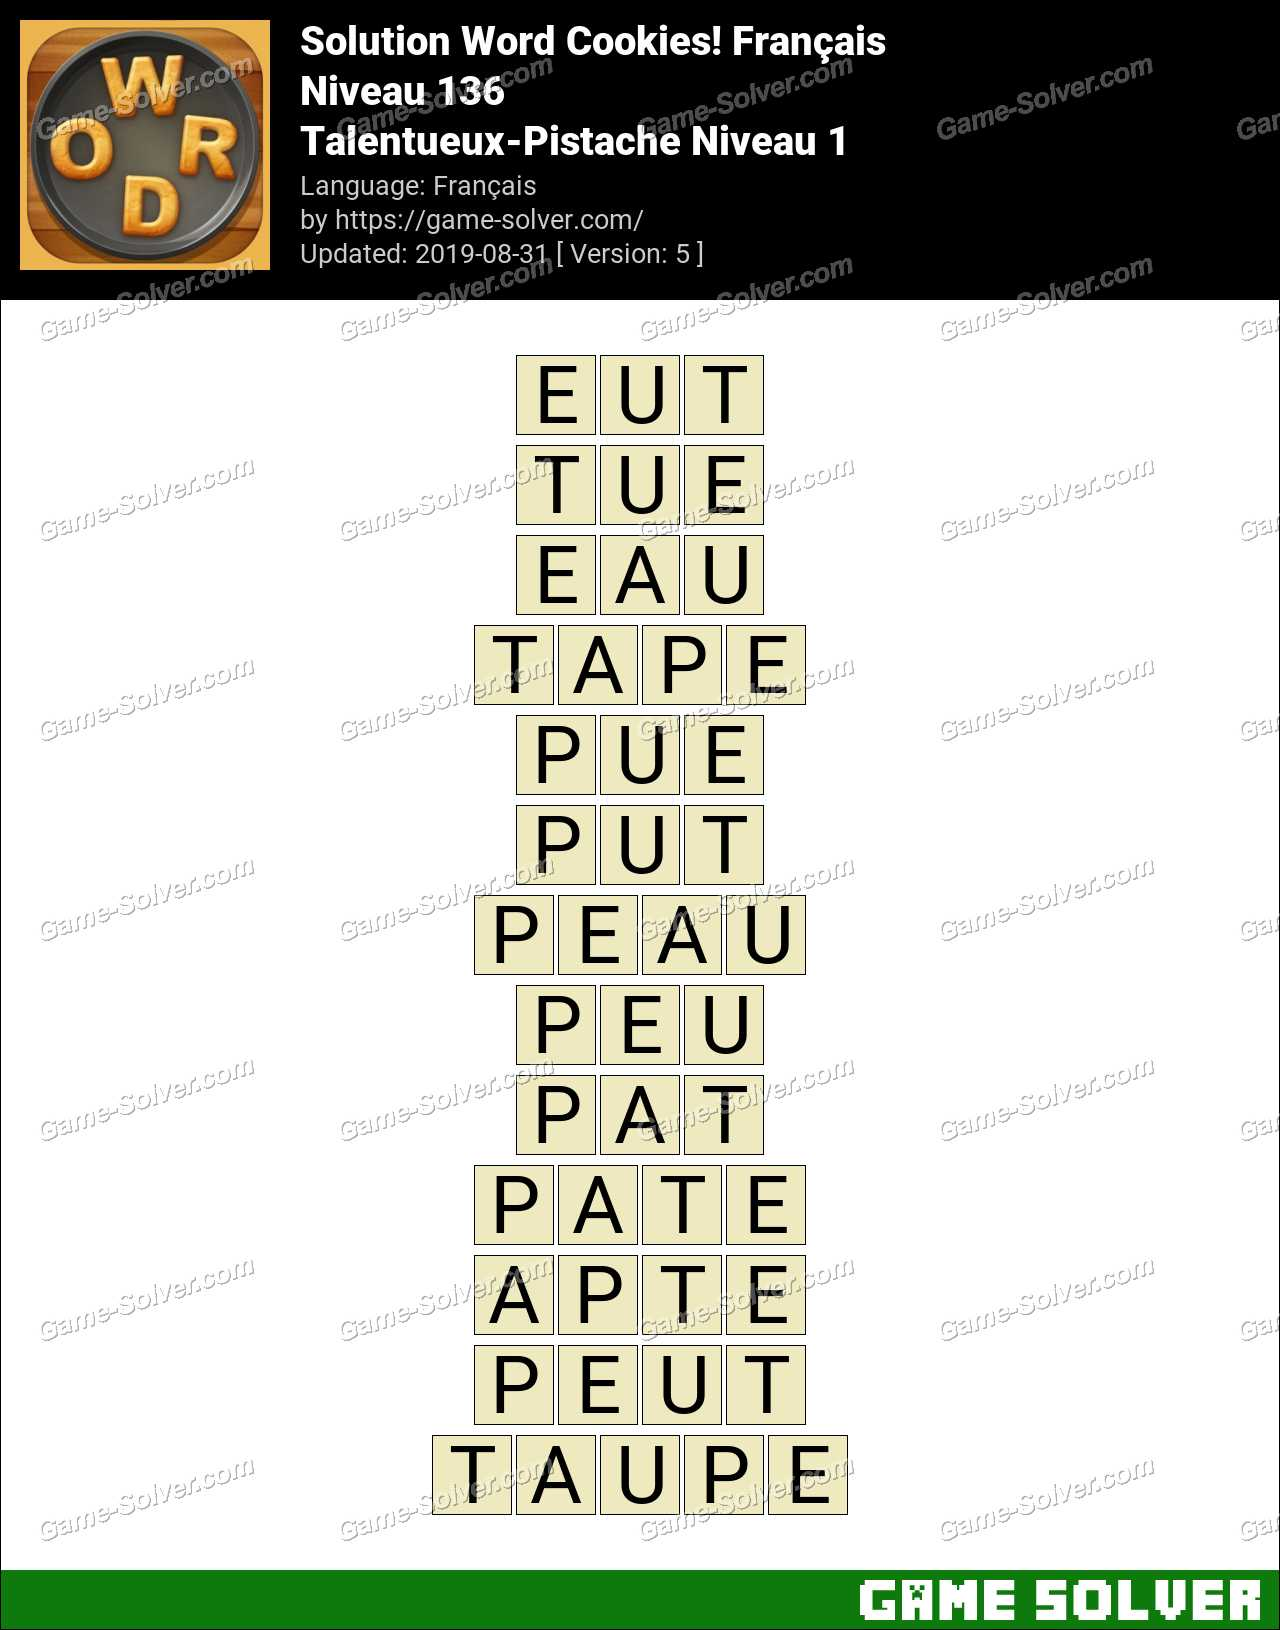 Solution Word Cookies Talentueux-Pistache Niveau 1